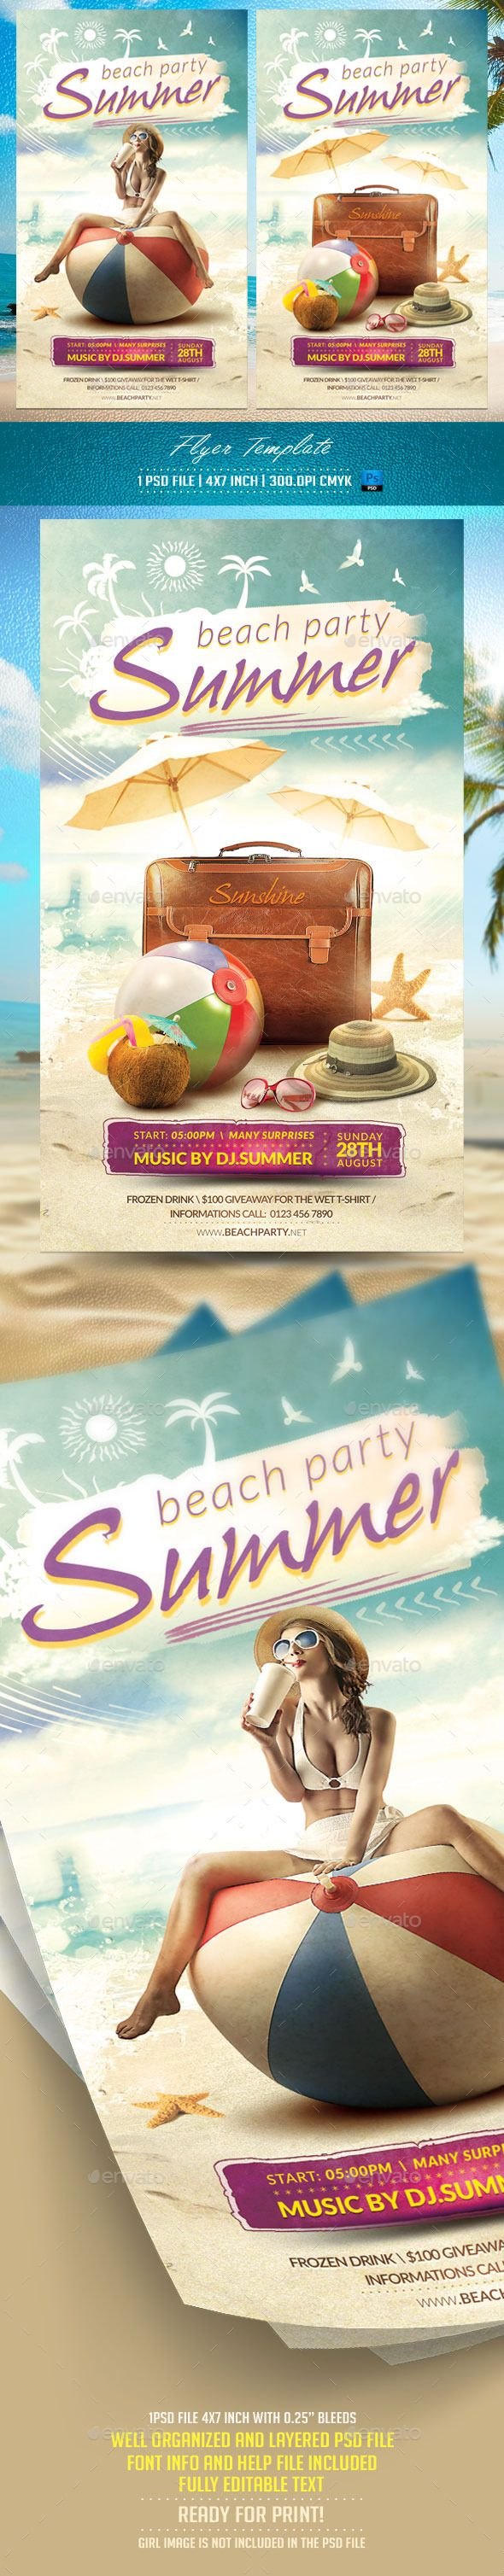 Summer Flyer Template v2 — Photoshop PSD #water #retro • Available here → https://graphicriver.net/item/summer-flyer-template-v2/12055623?ref=pxcr